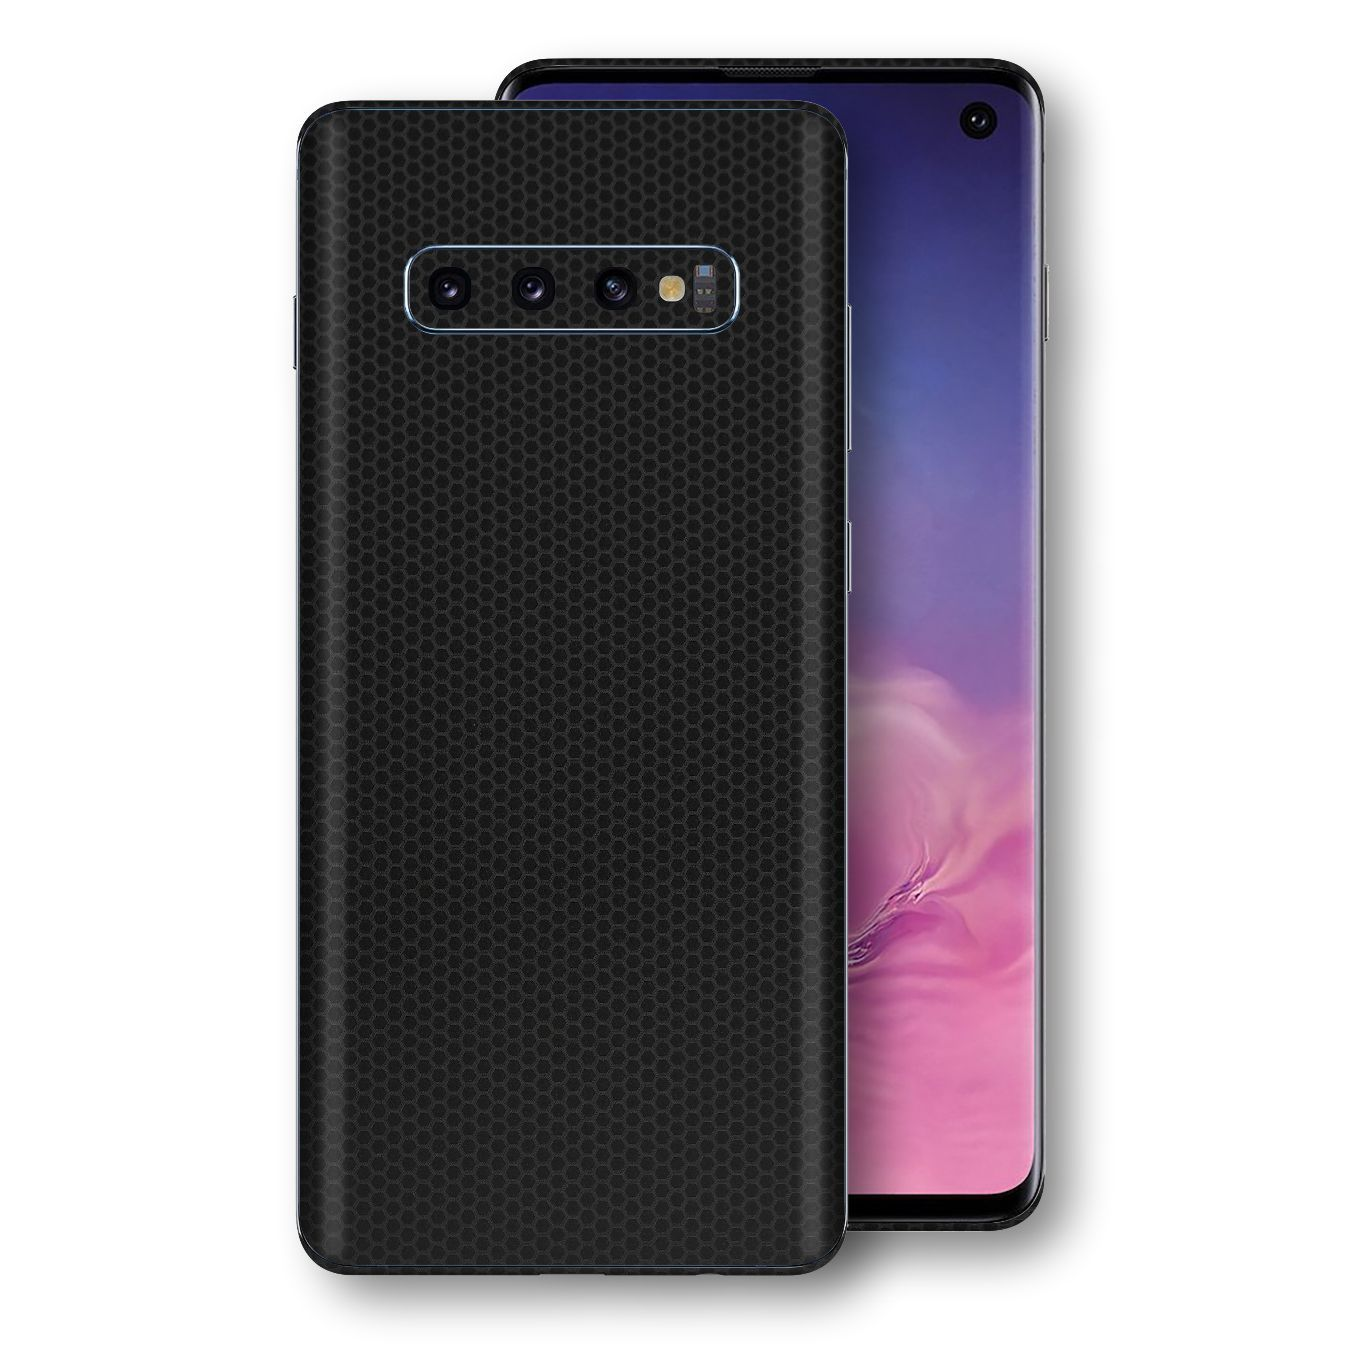 Samsung Galaxy S10 Black Matrix Textured Skin Wrap Decal 3M by EasySkinz